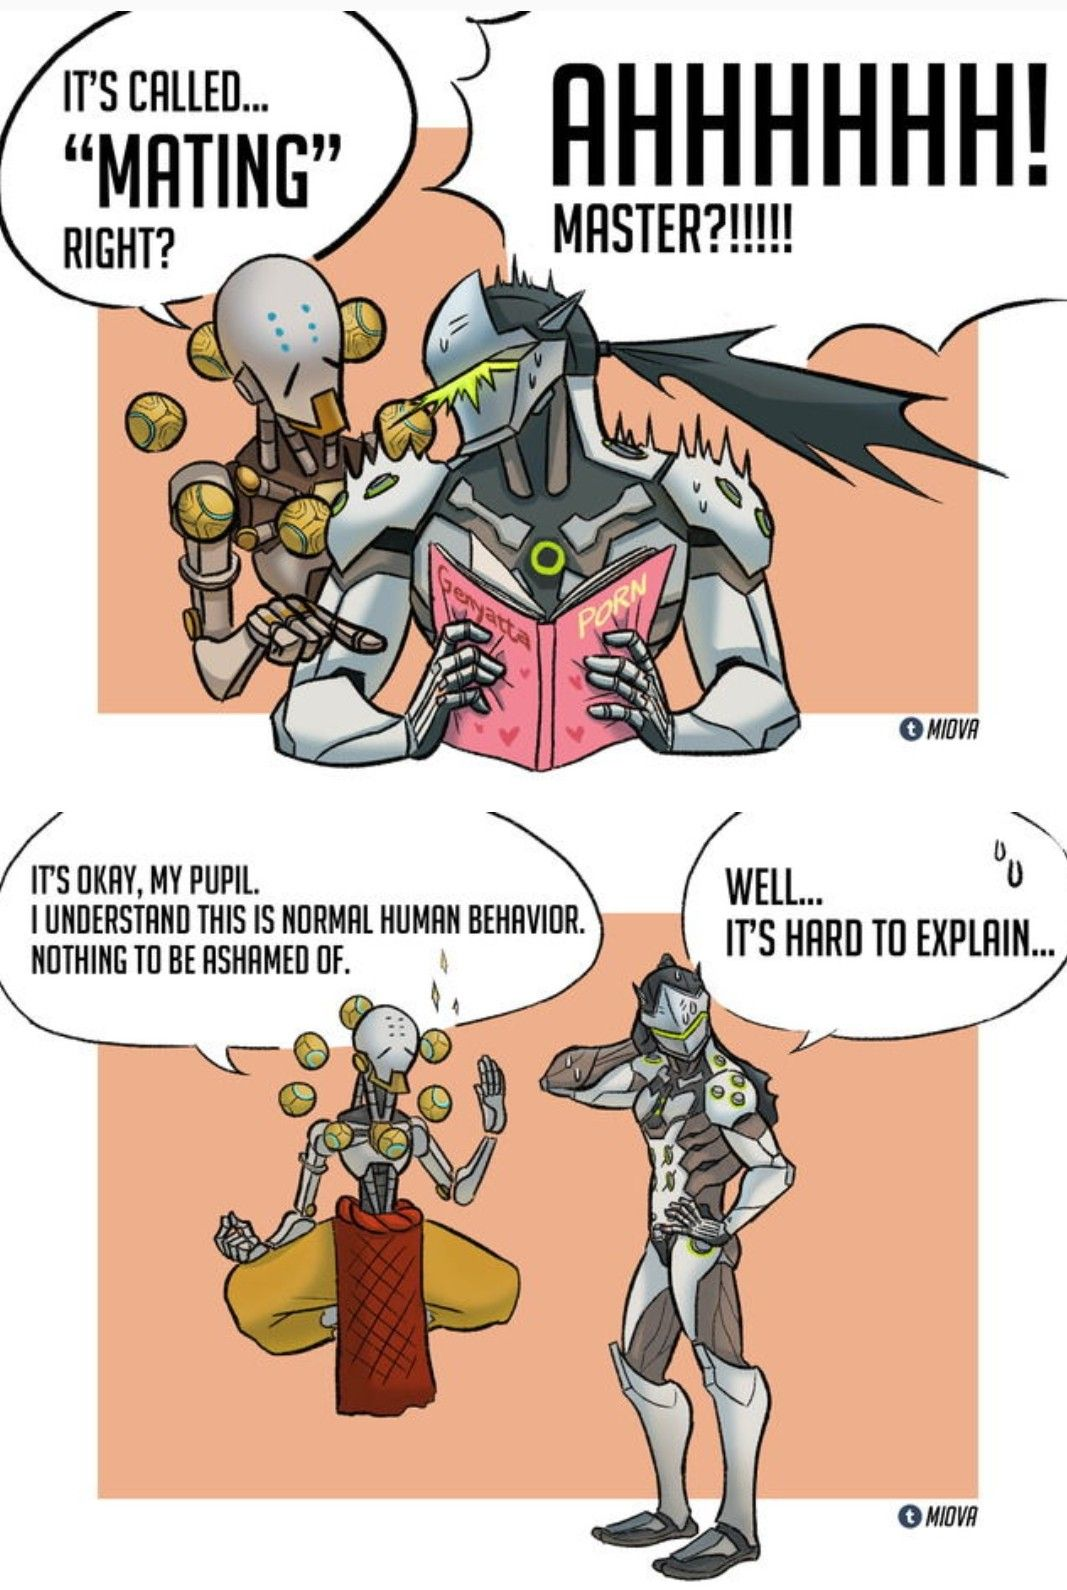 OMG in the magazine reads genyatta     genji you sneaky